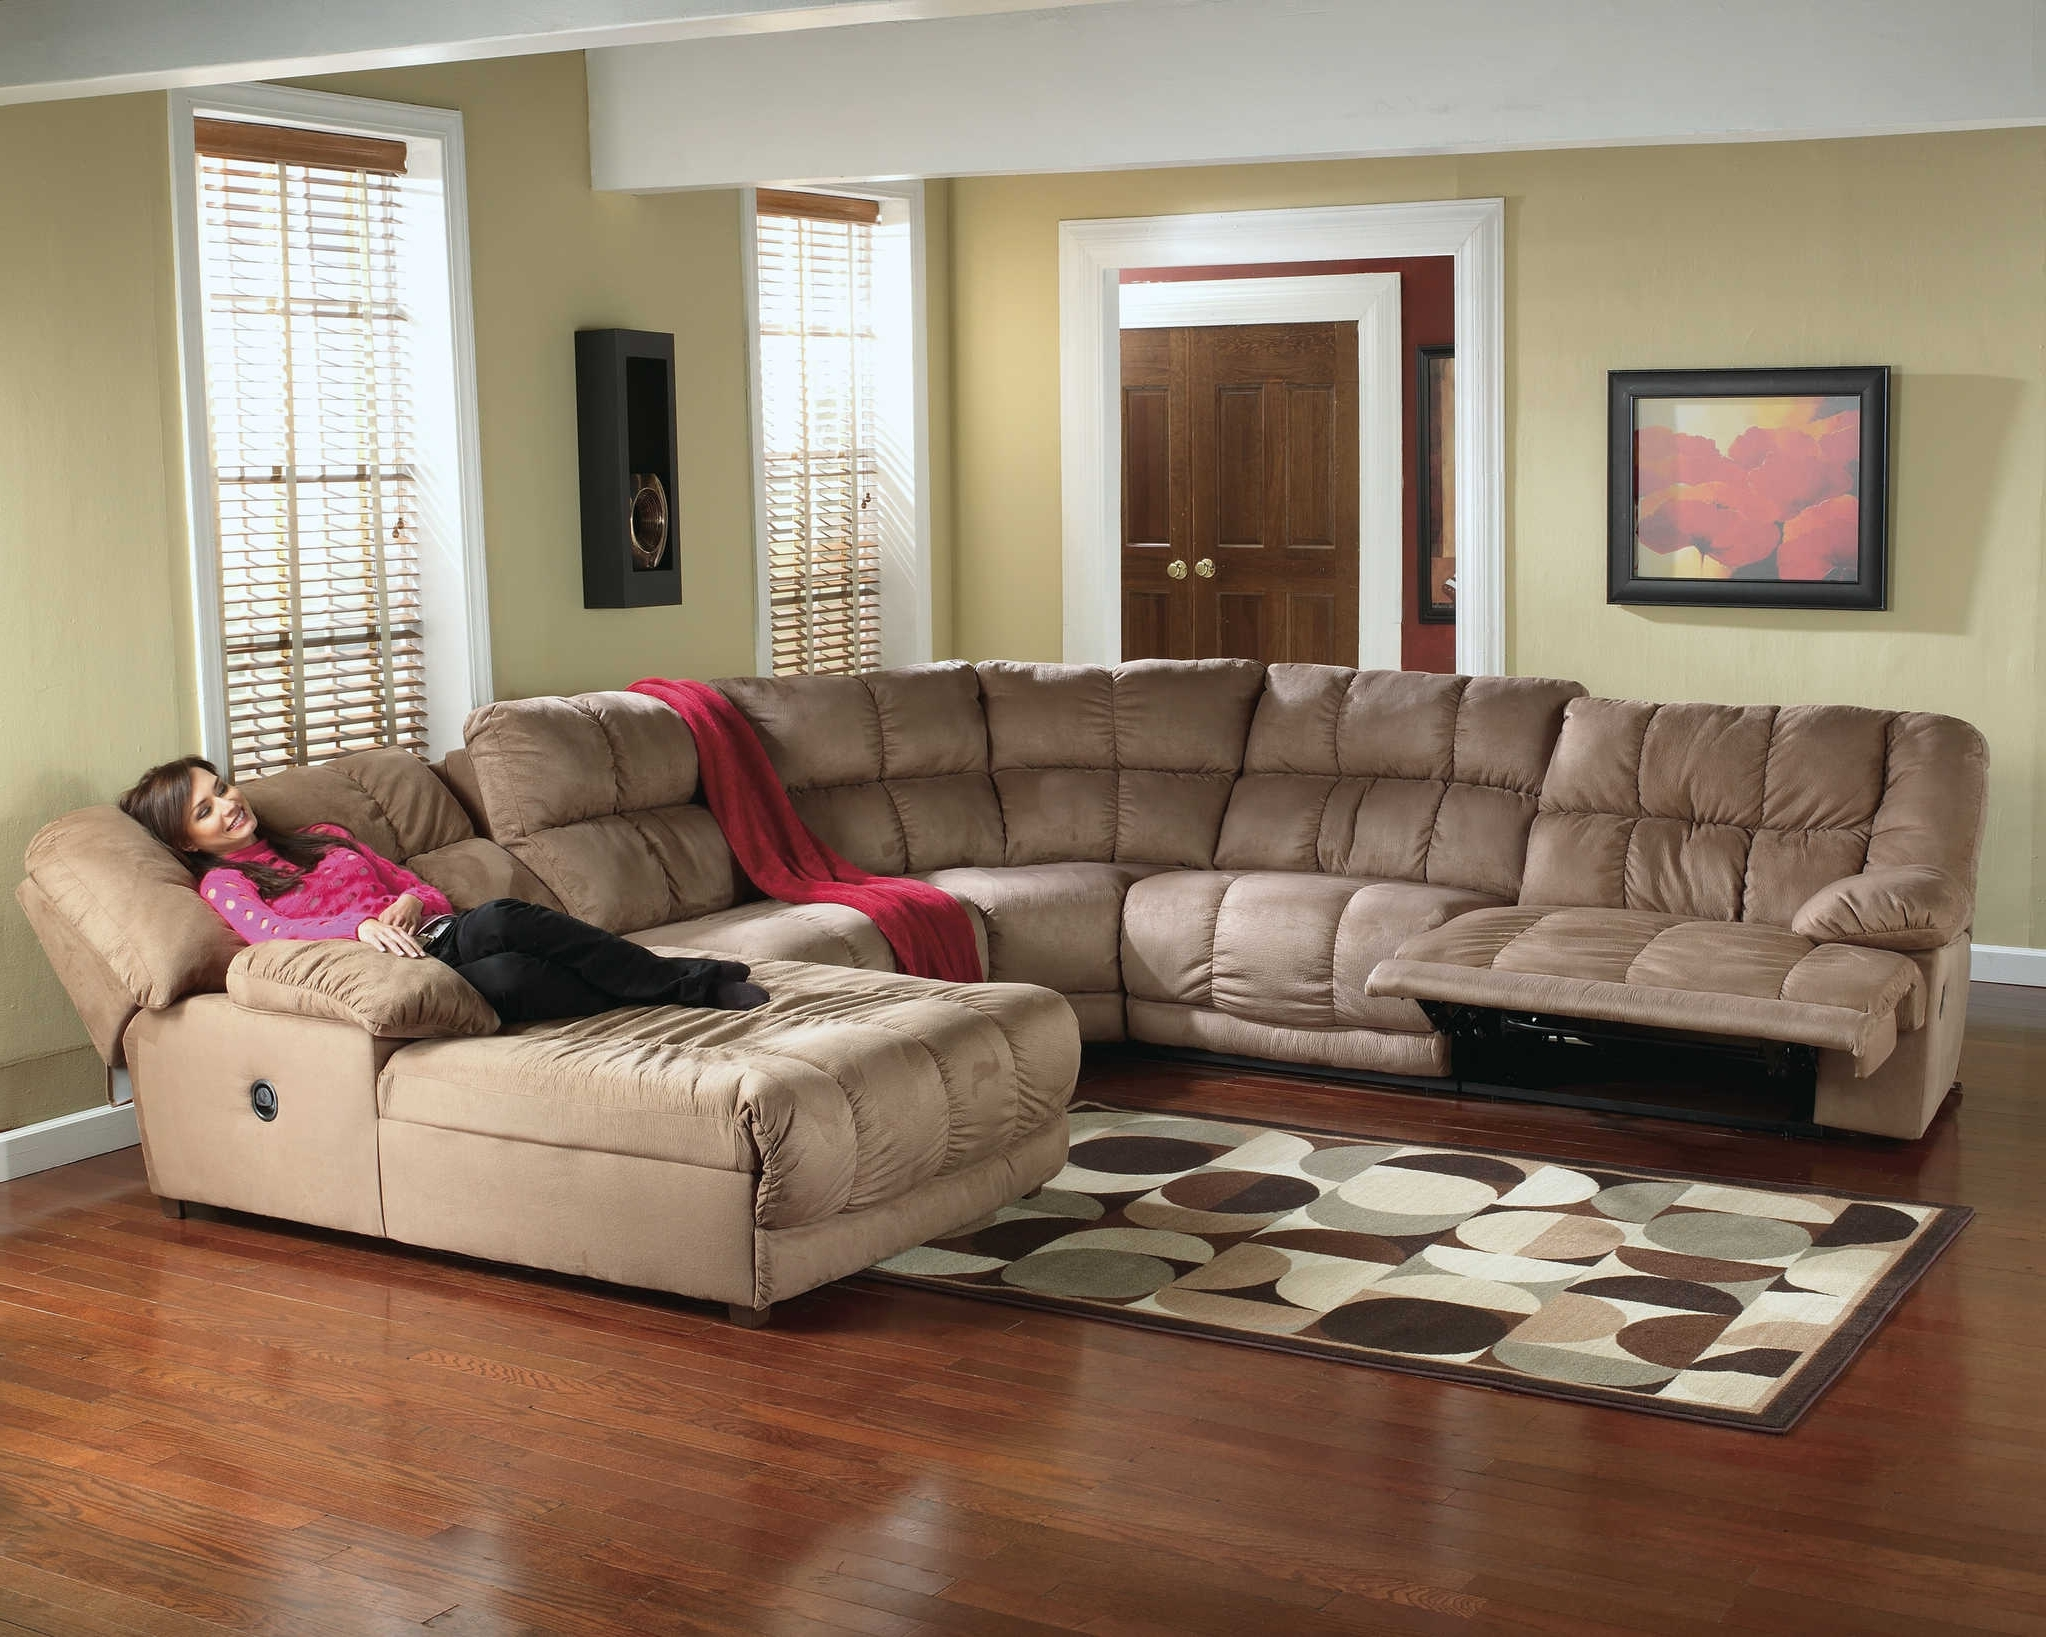 Widely Used Media Room Sectional Sofas With Regard To Media Room Sectional Sofas – Fjellkjeden (View 15 of 15)